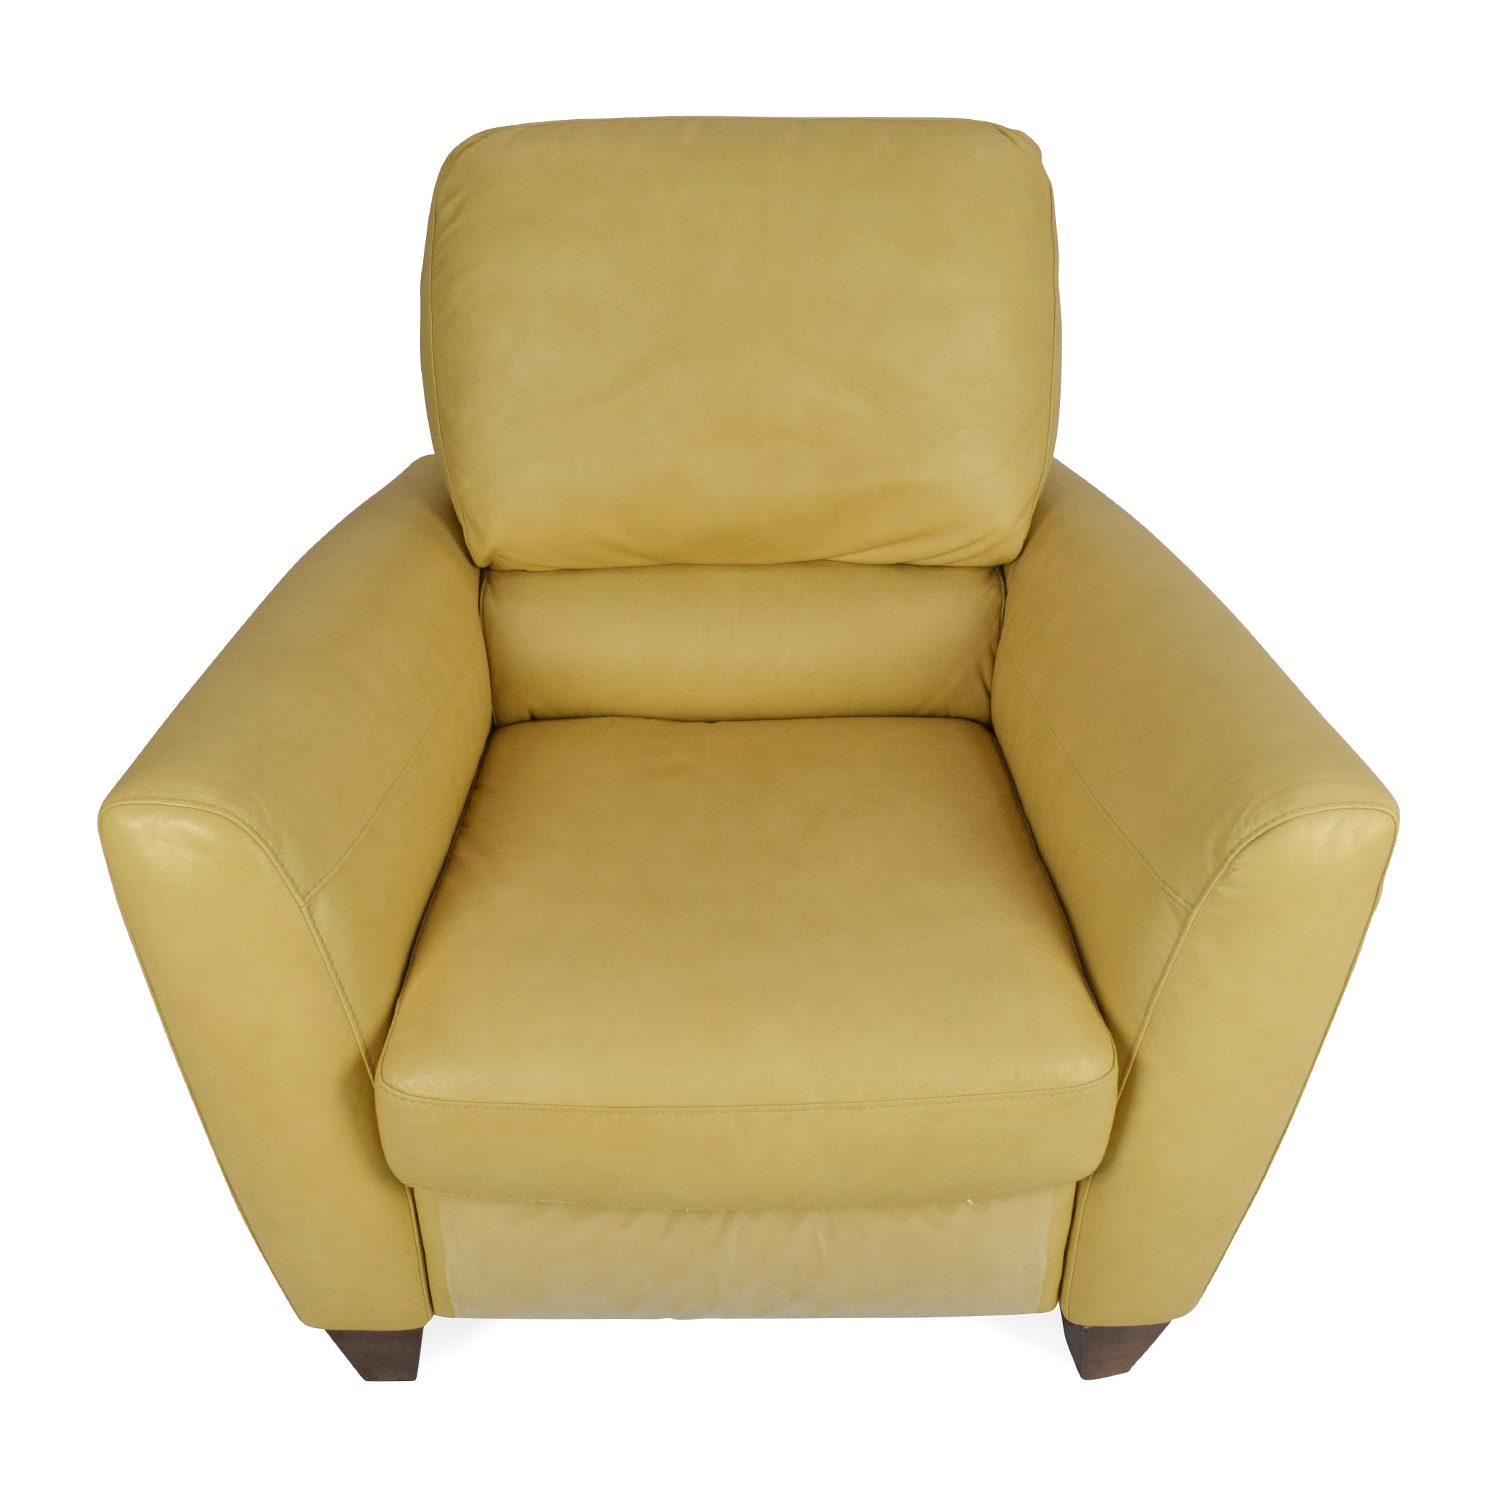 47% OFF Bob s Furniture Bob s Furniture Brown Recliner Chair